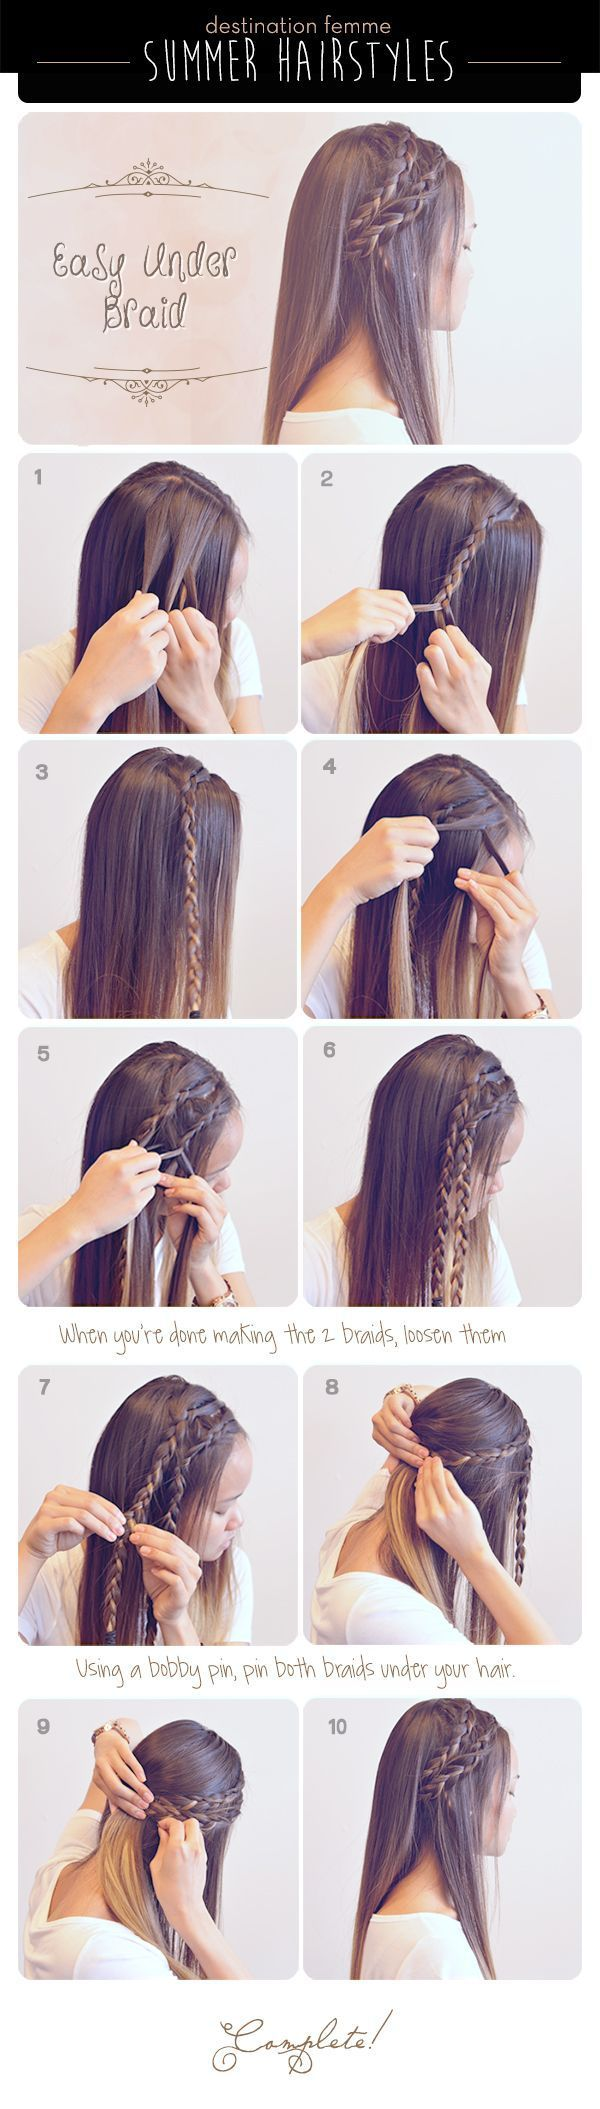 Nice cute u easy braided hairdos for summer destination femme by